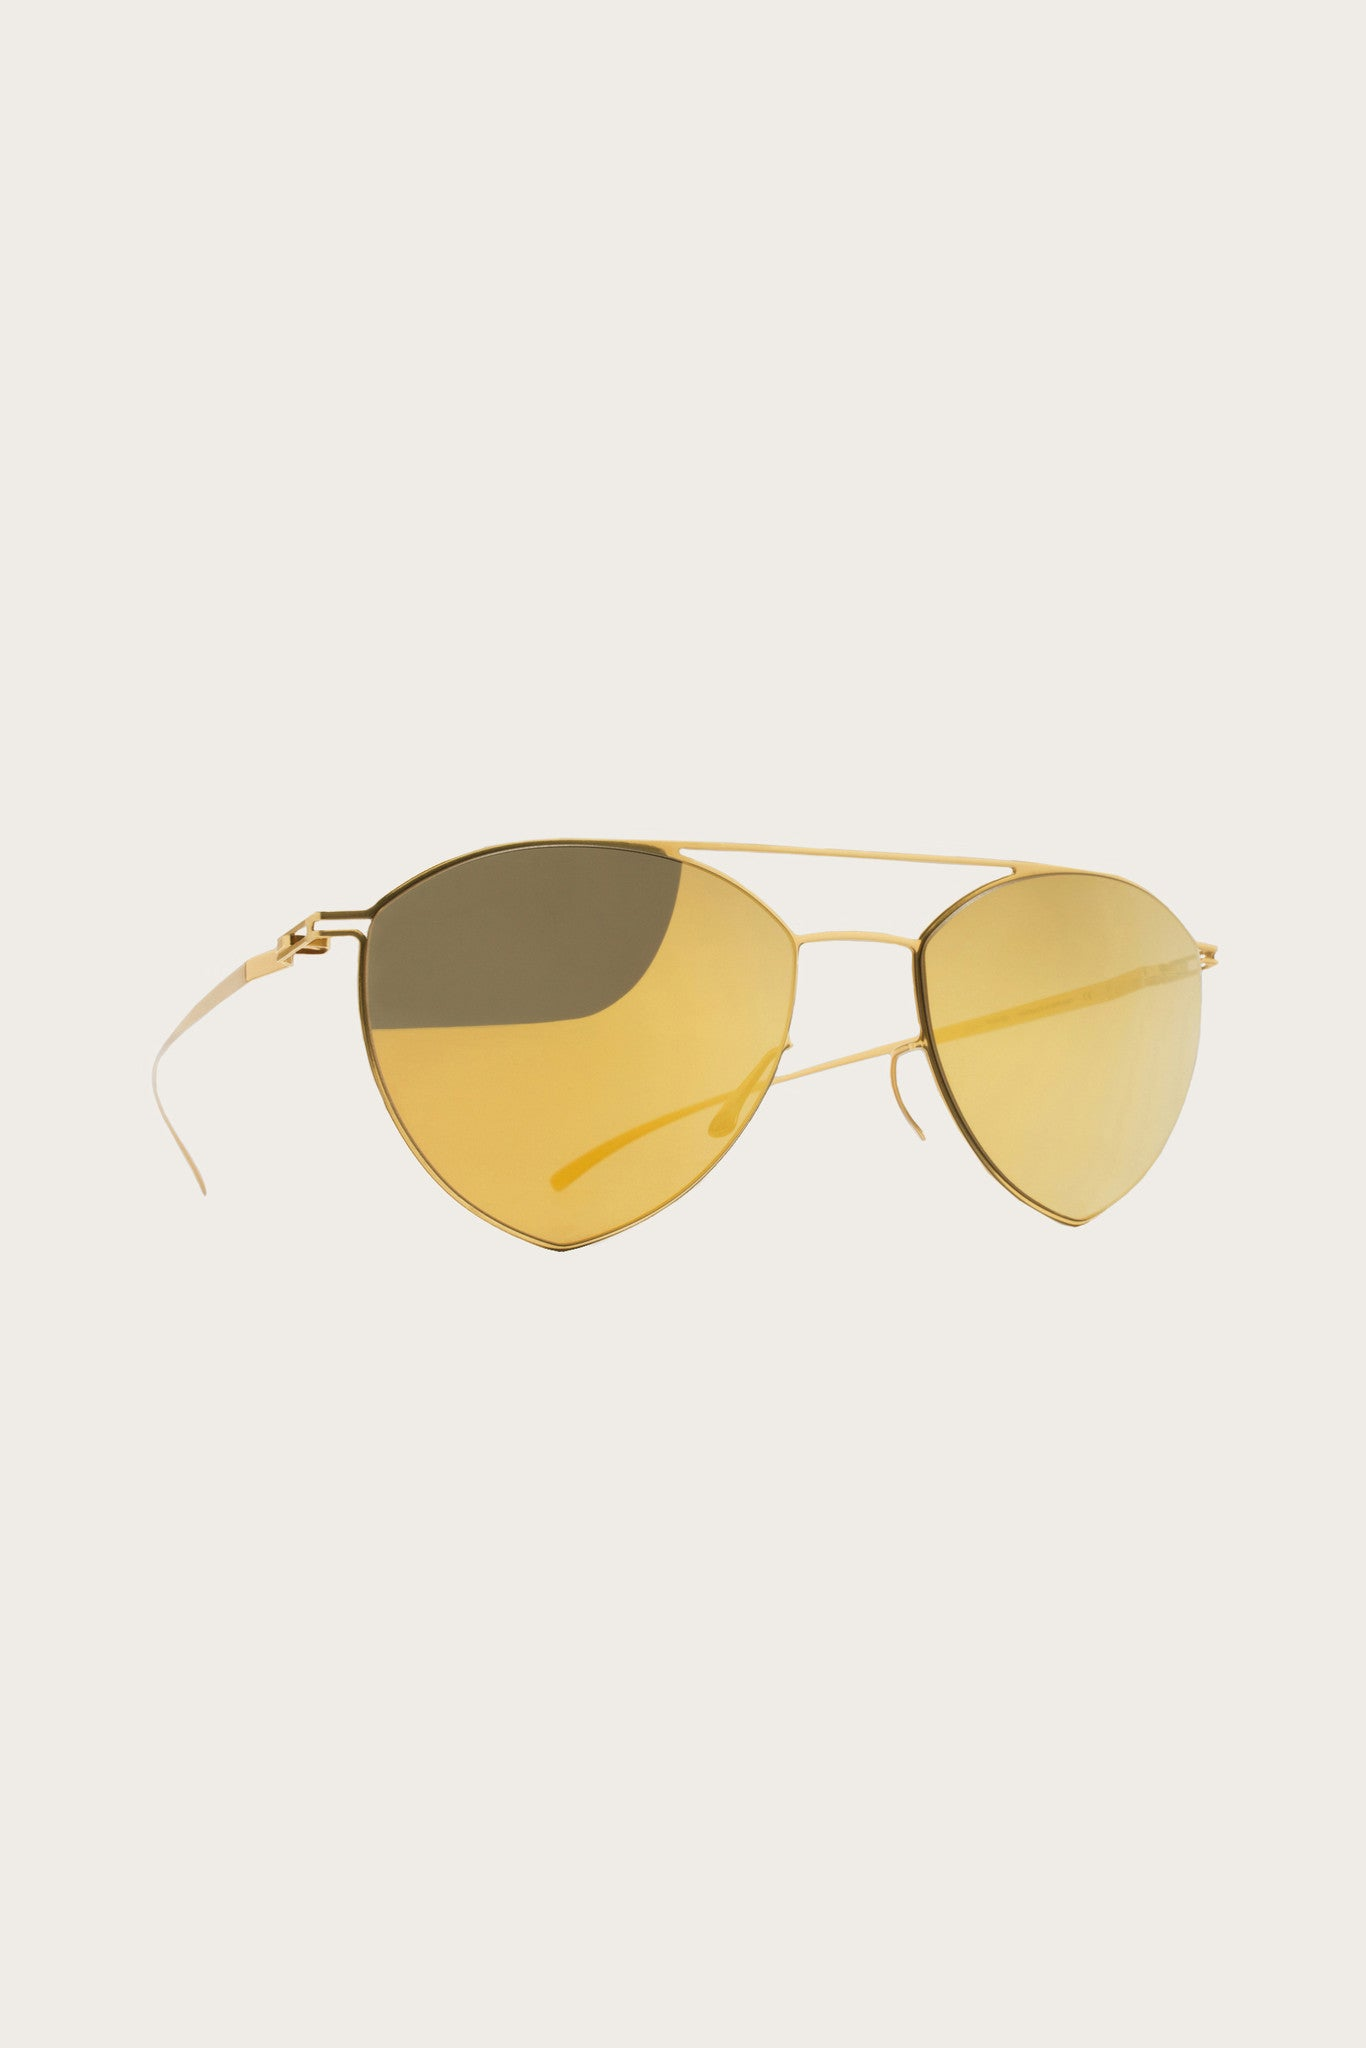 Maison Margiela Aviator Sunglasses, Gold - MYKITA